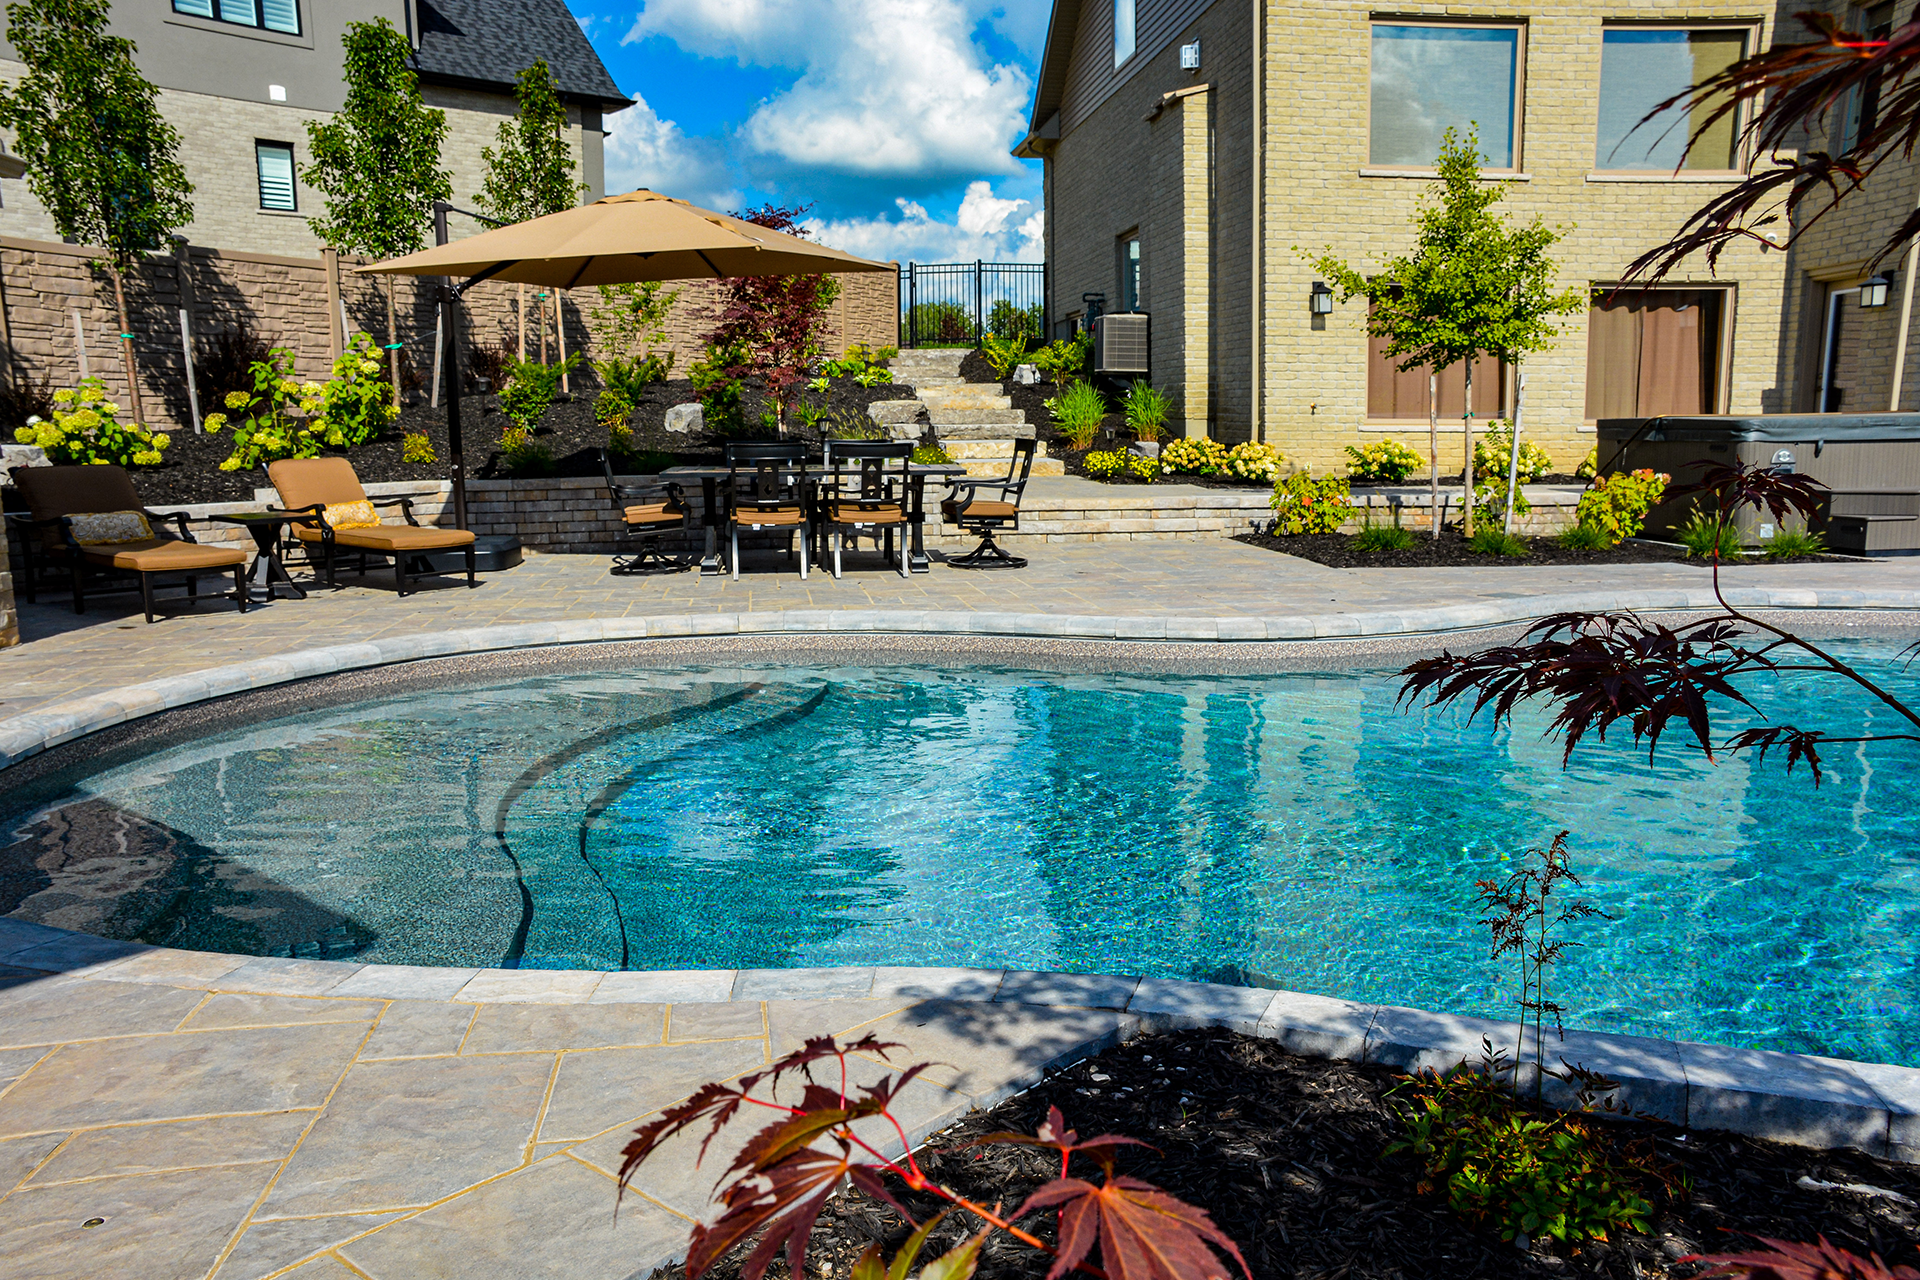 A glamour shot of a beautiful backyard pool and outdoor living space